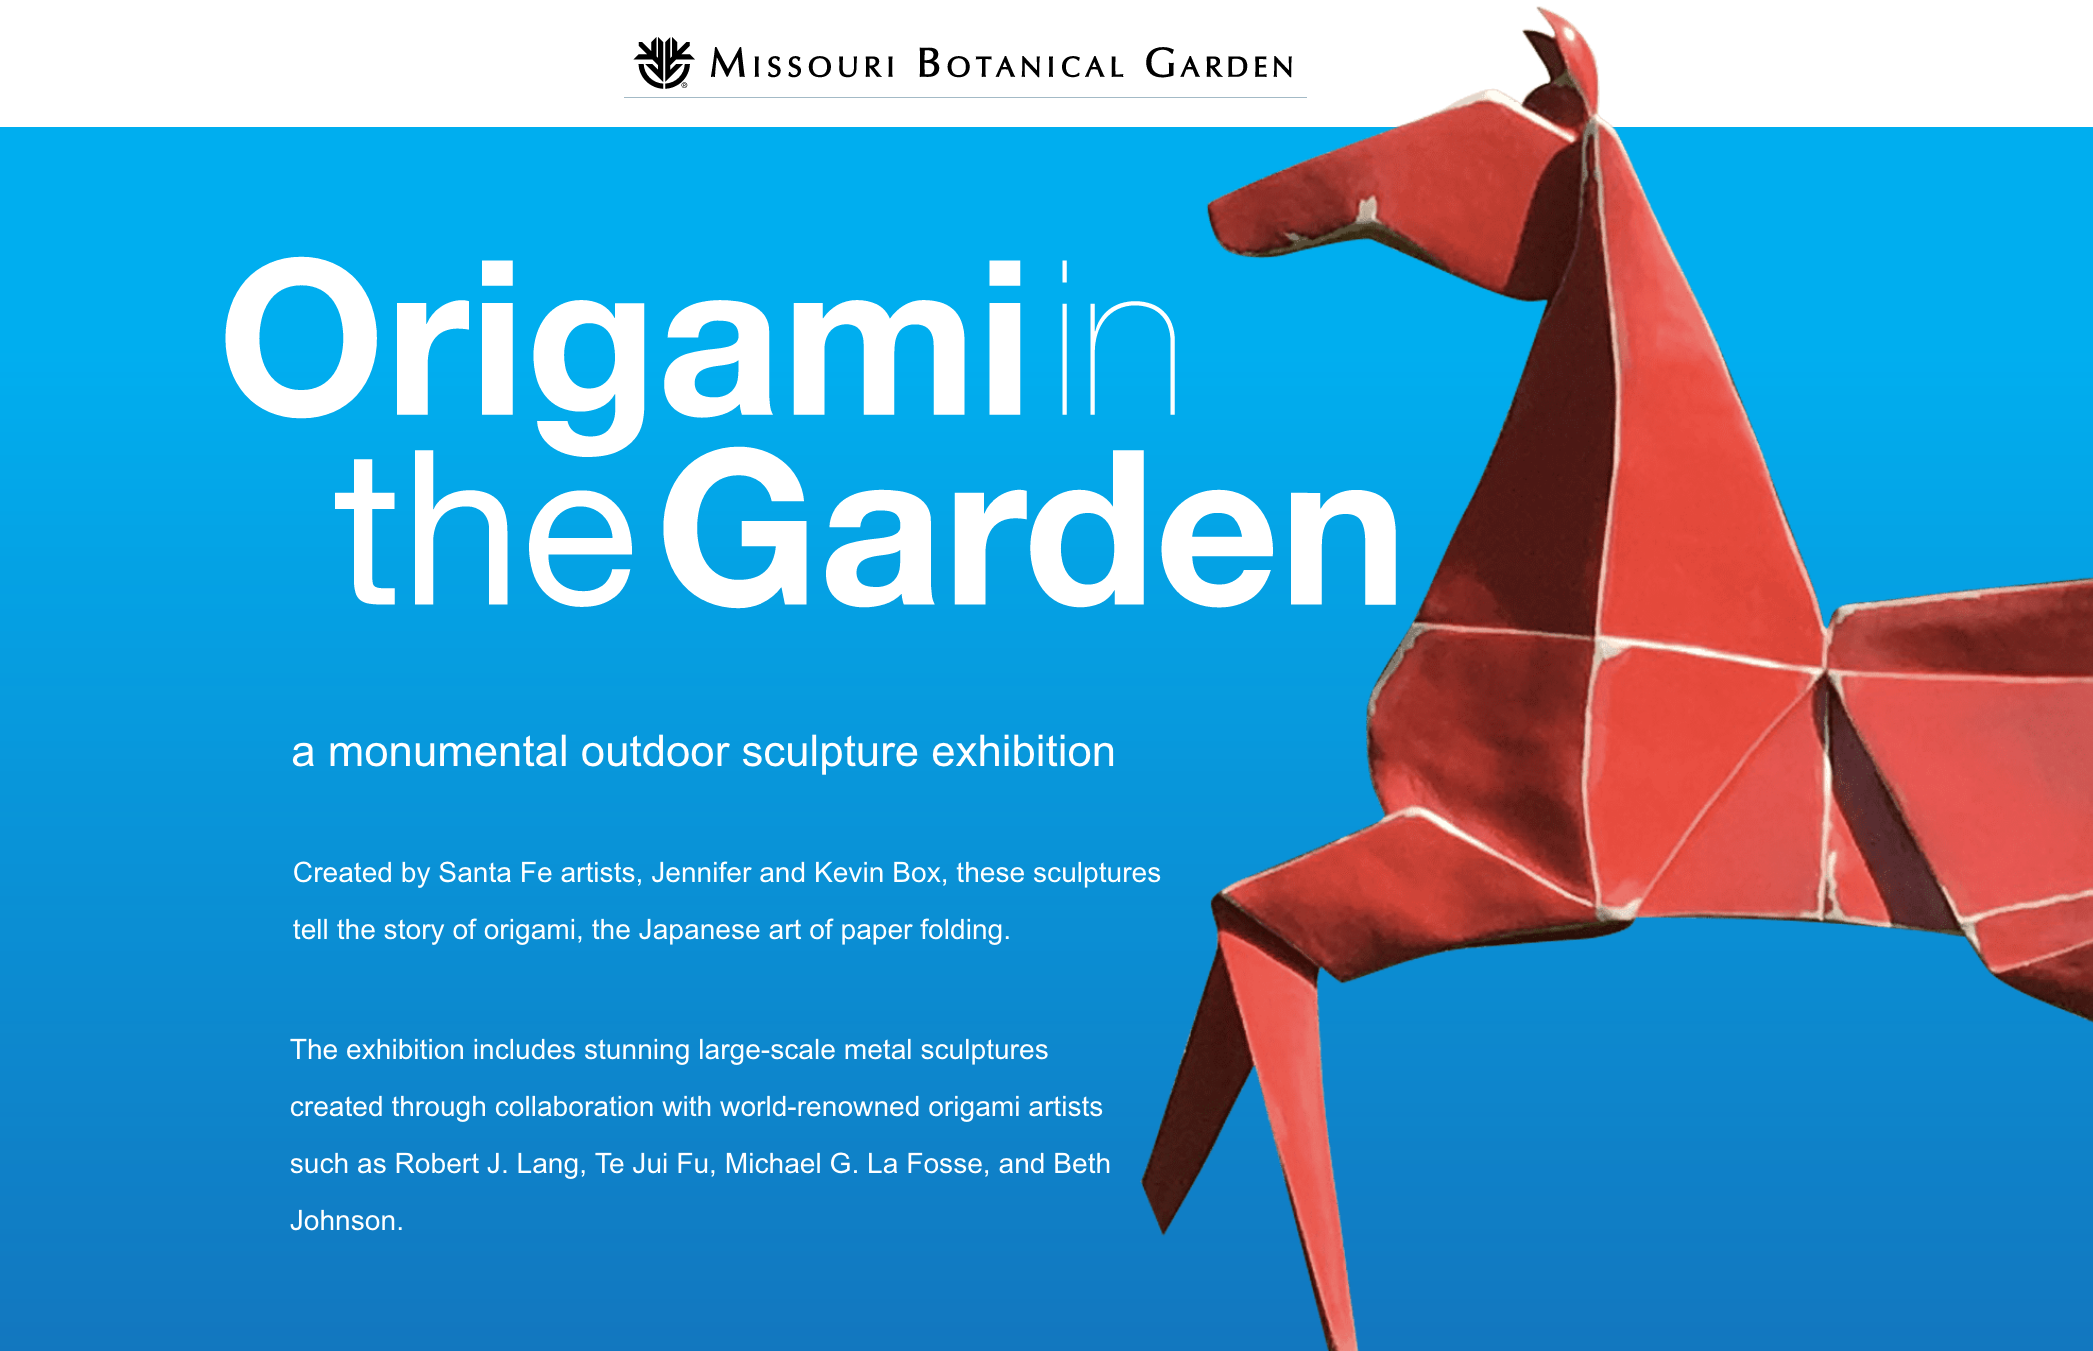 OrigamiintheGarden logo and painted pony sculpture over blue background